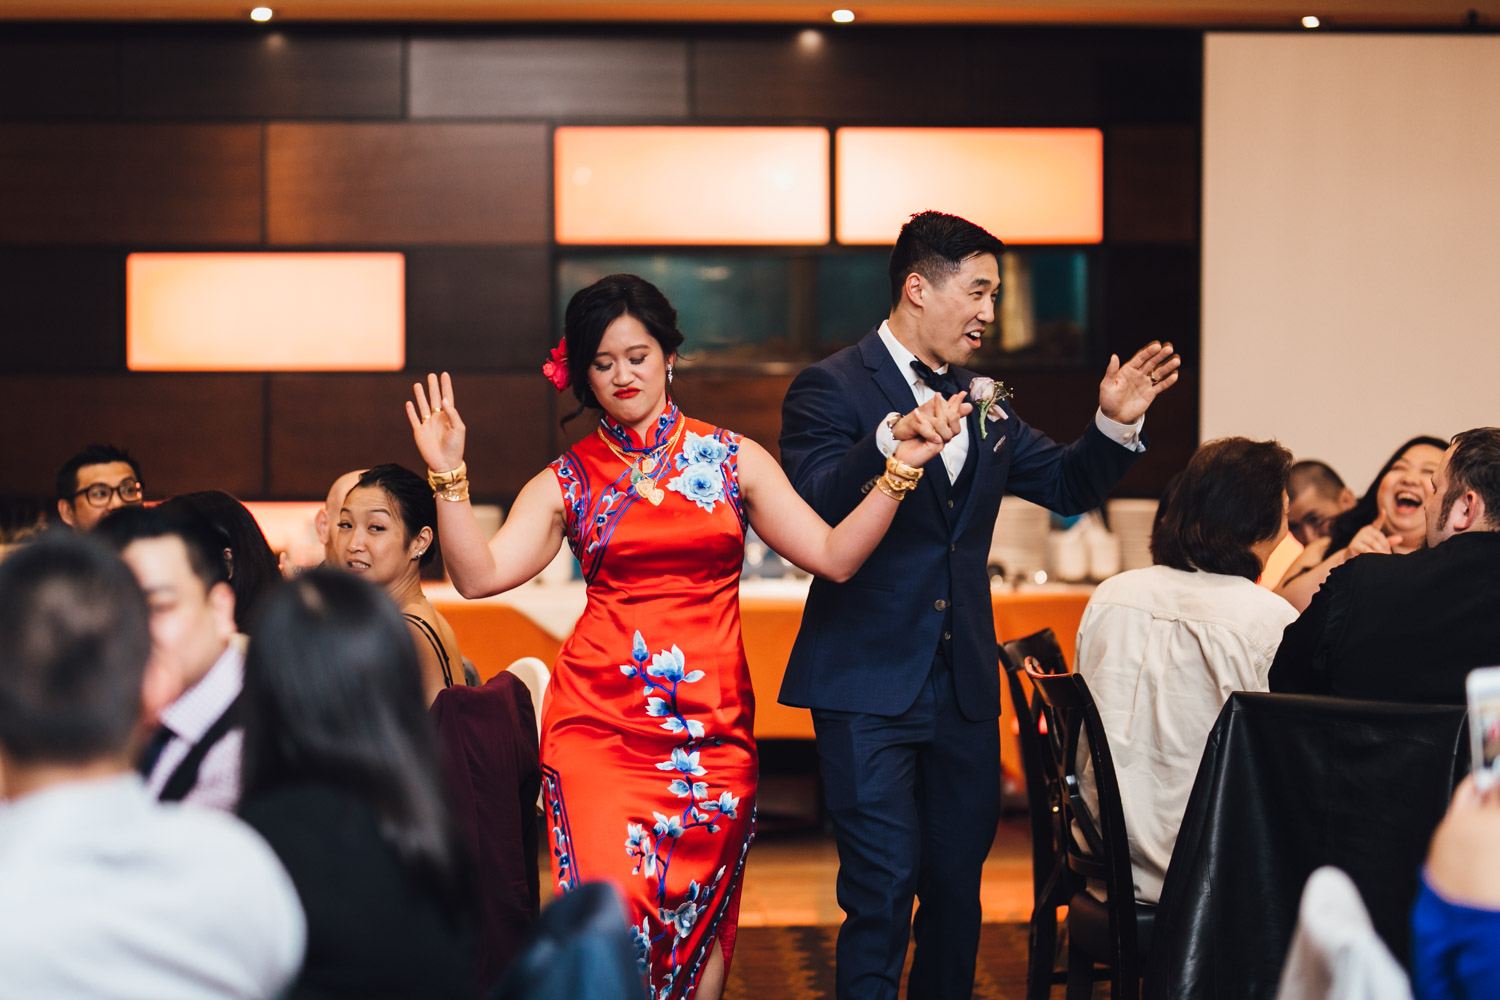 chinese wedding reception photography at kirin restaurant in new westminster